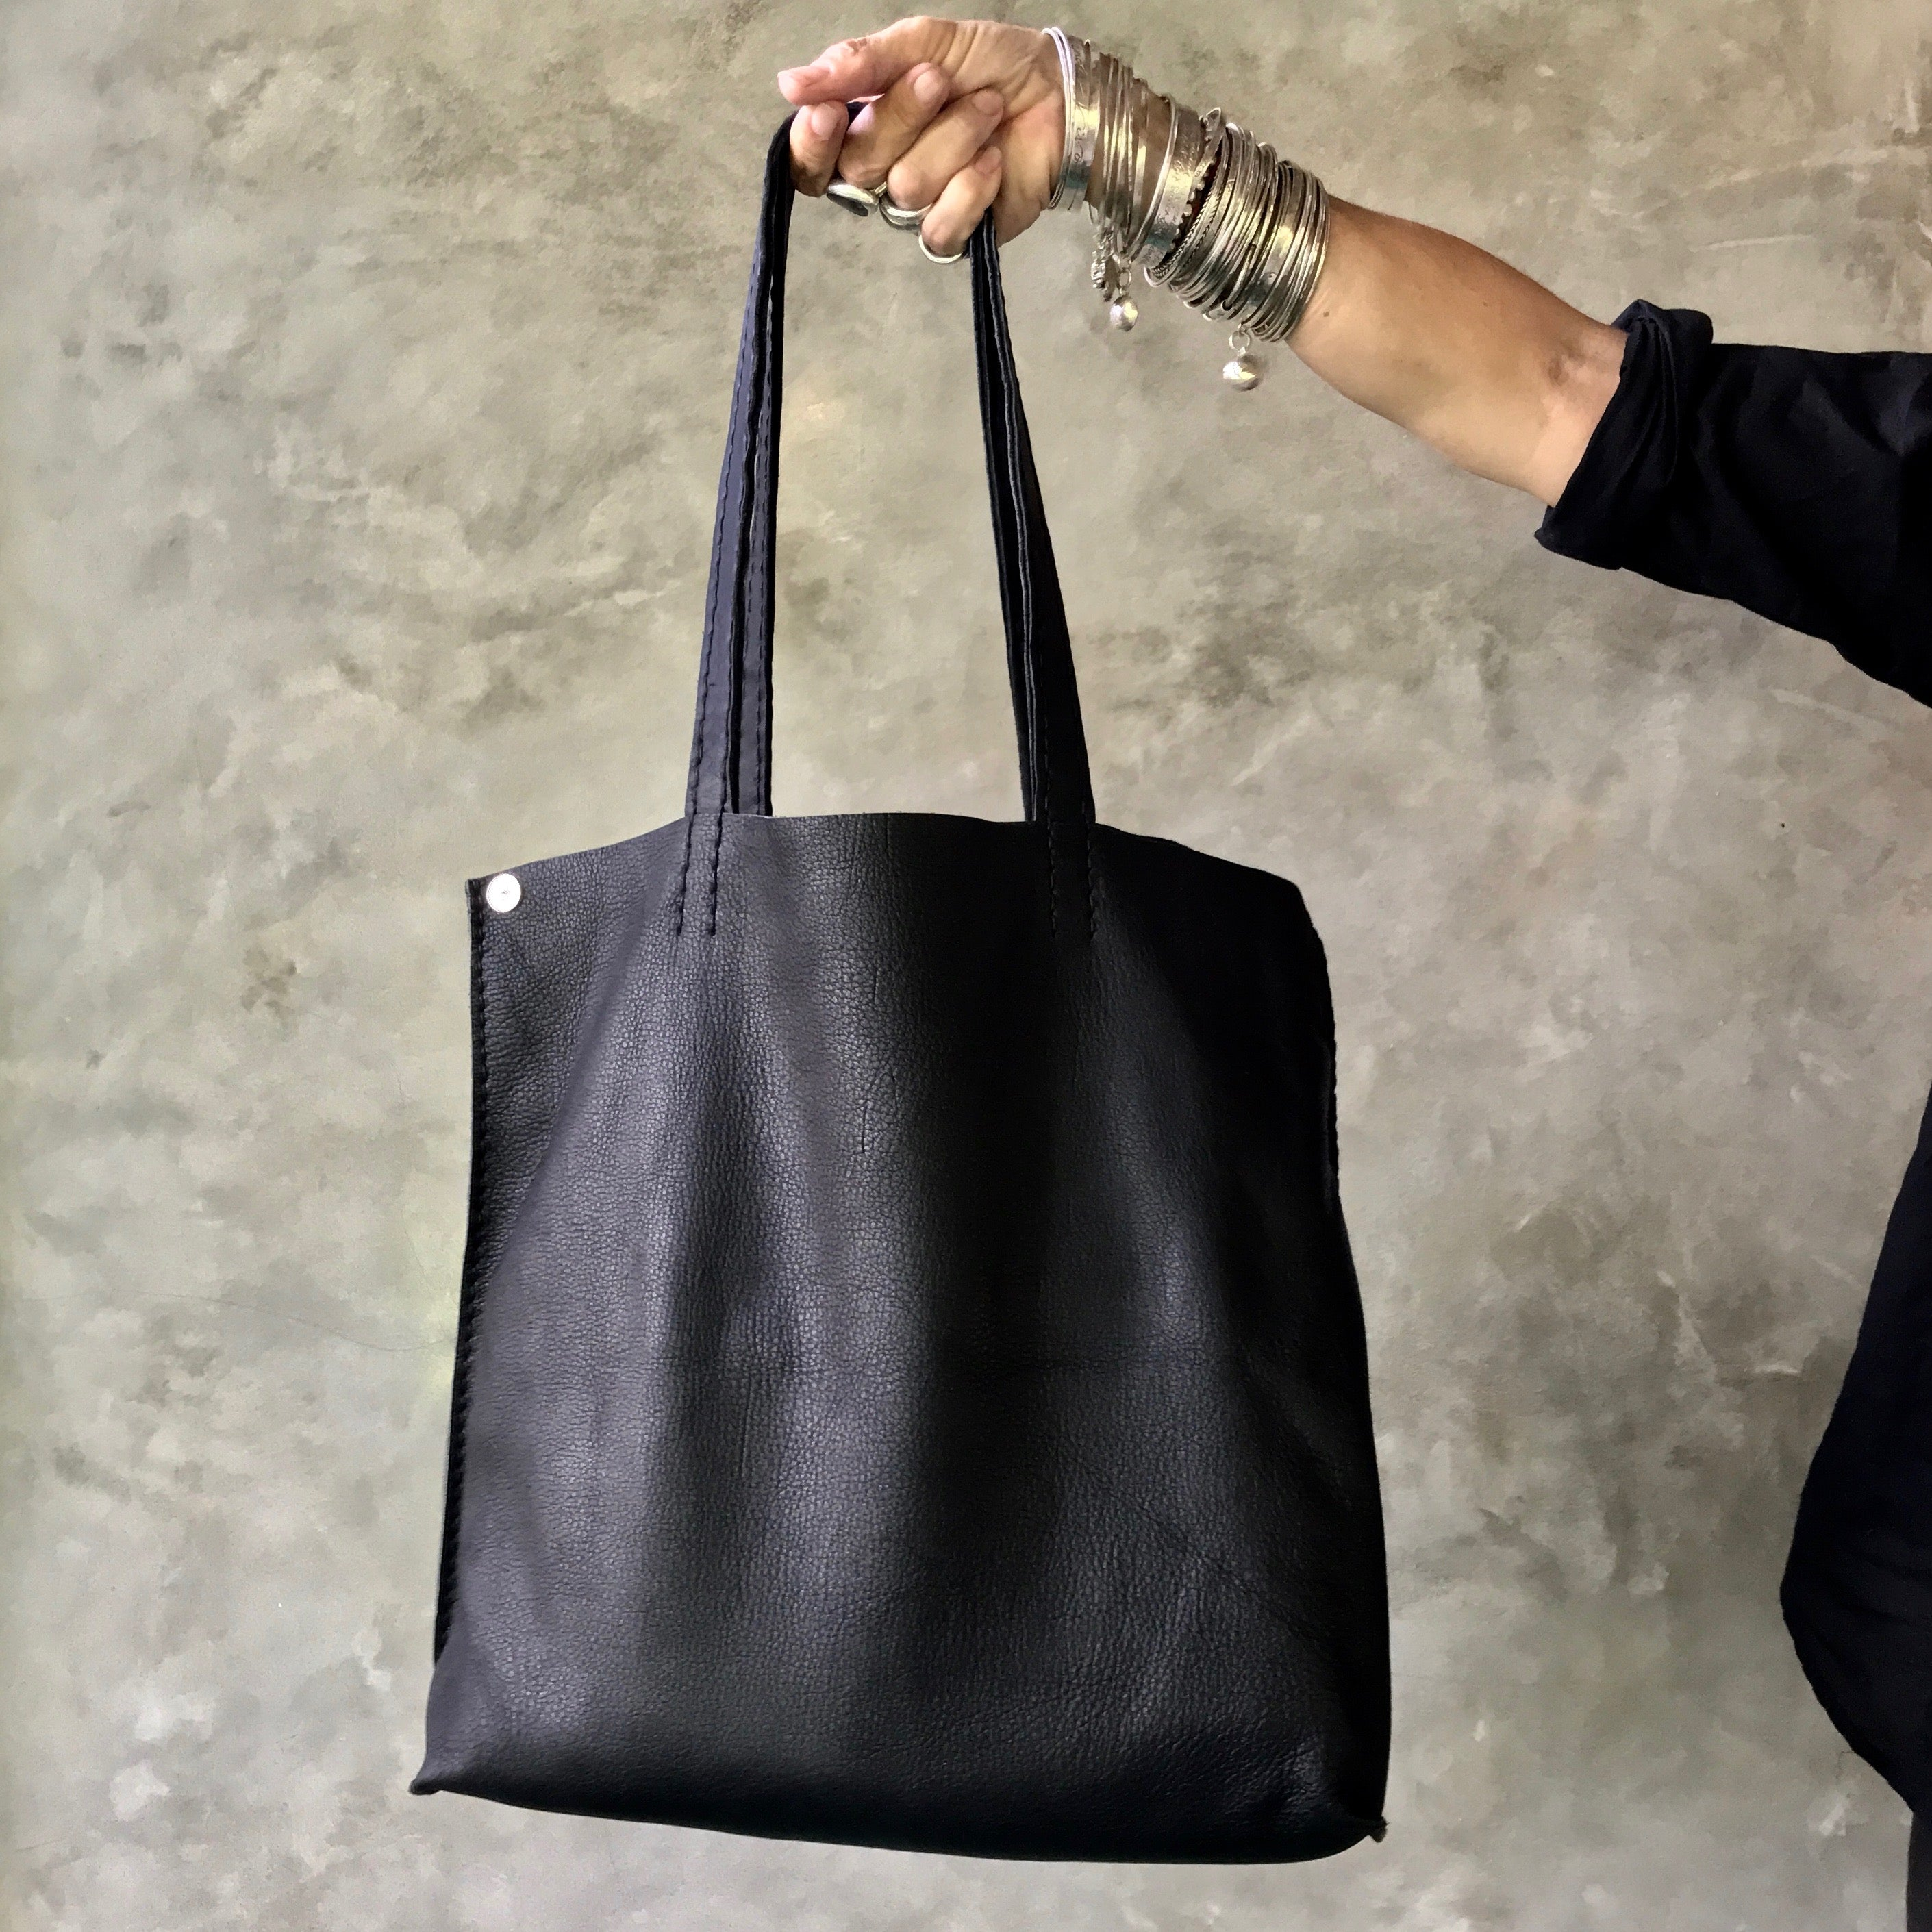 CLW Tote